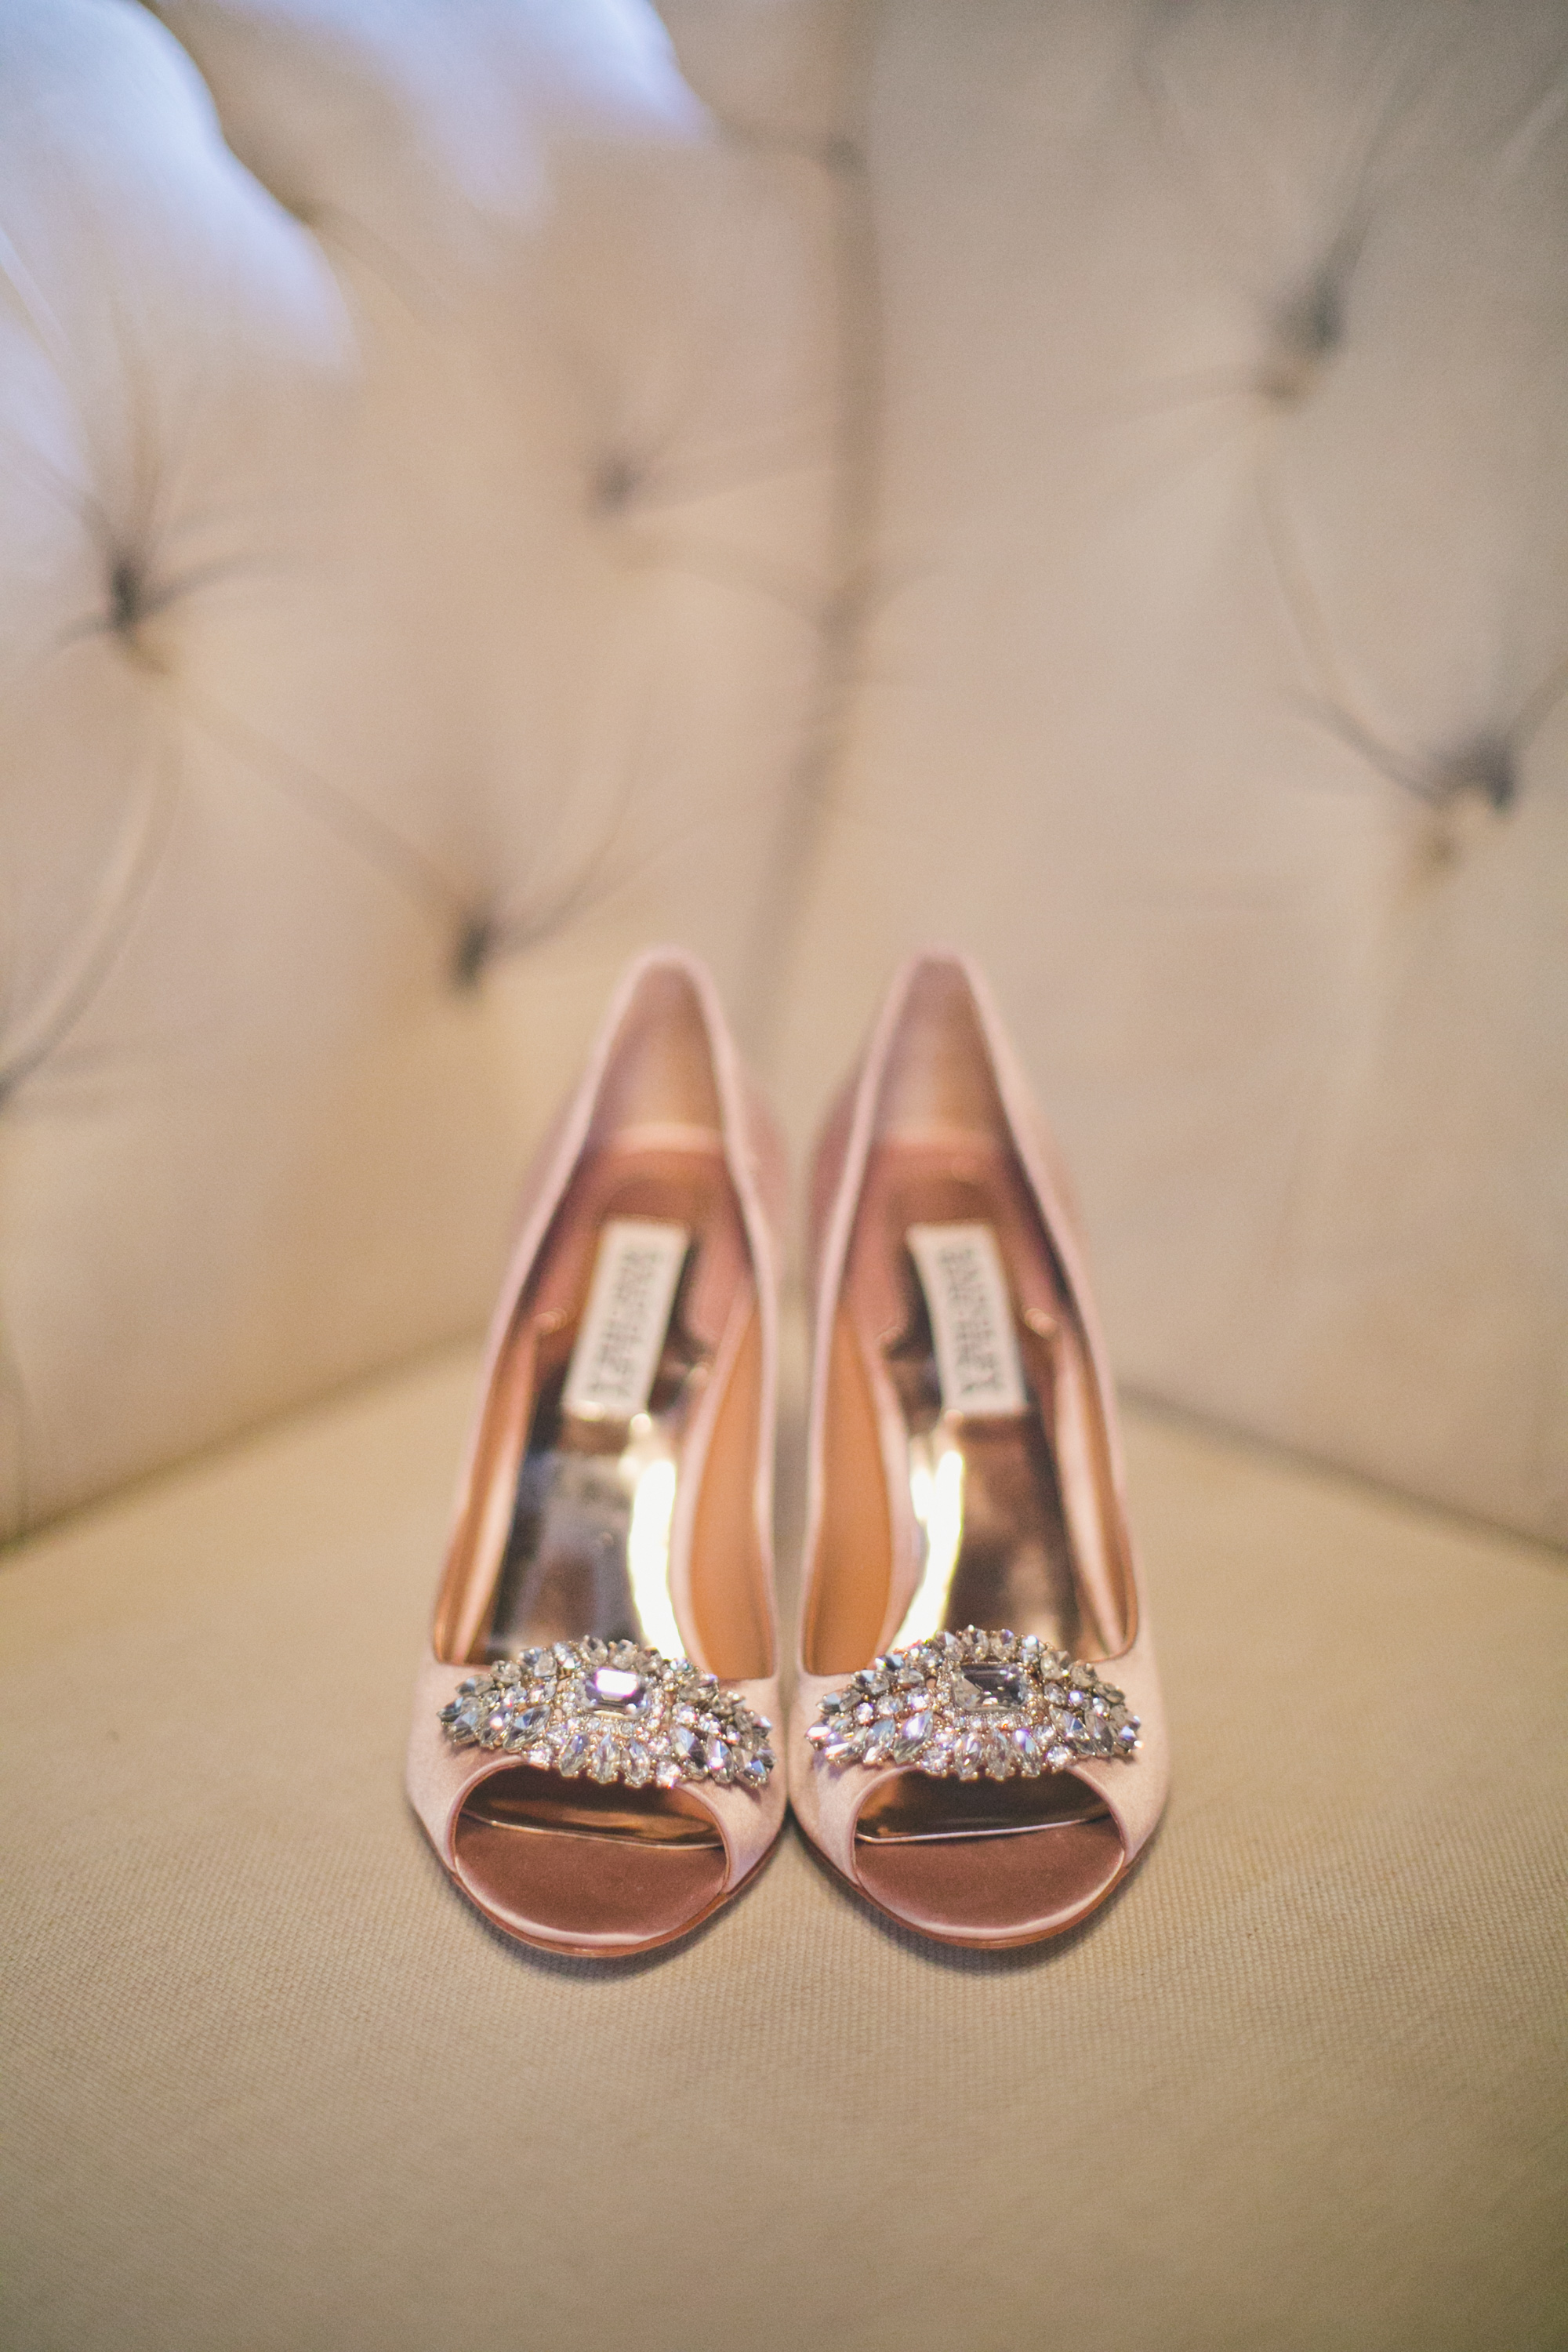 002 wedding shoes.JPG